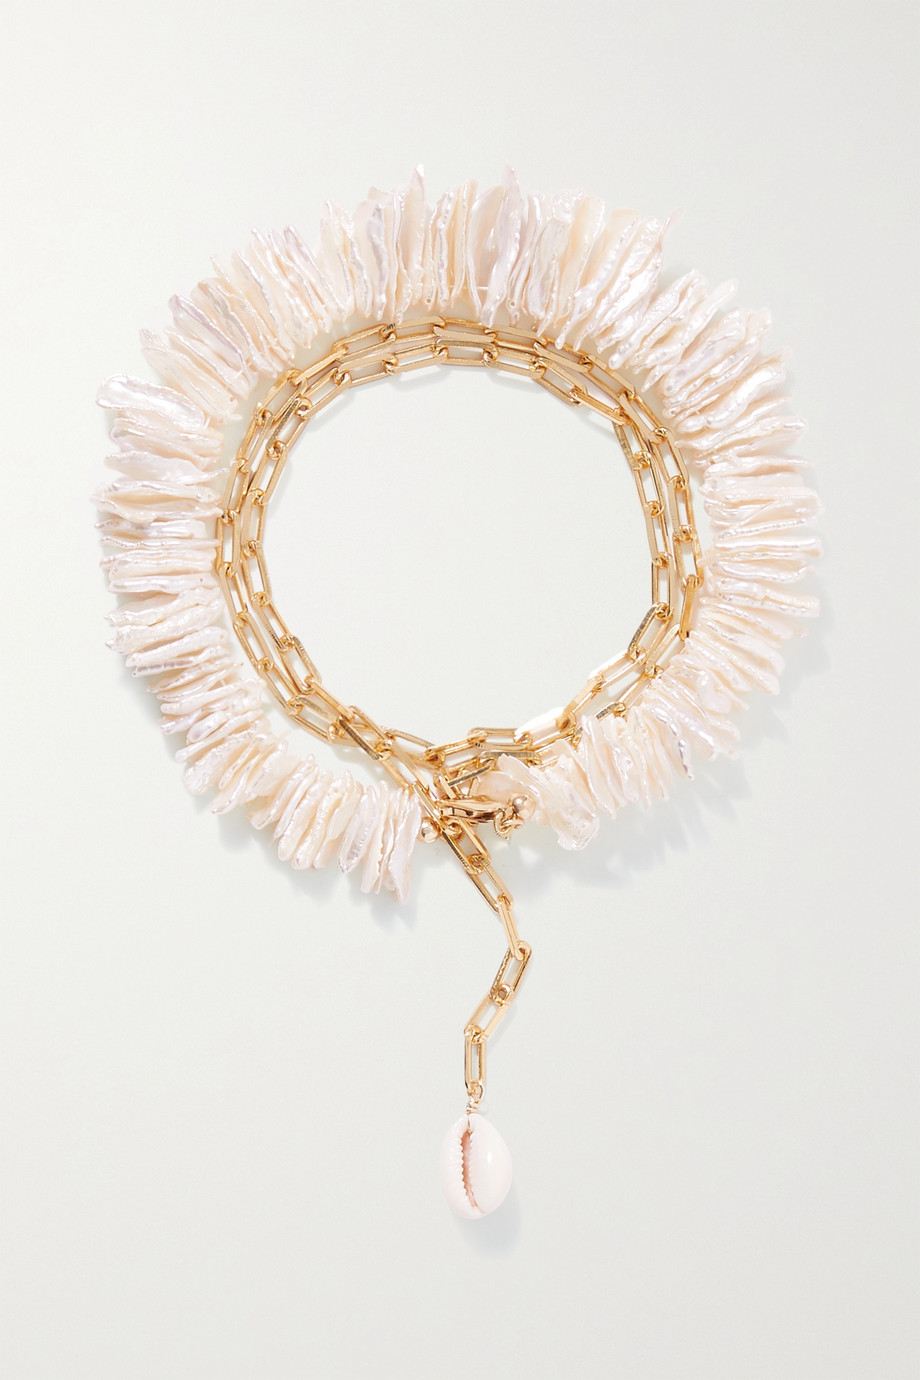 ÉLIOU Halia gold-plated, pearl and shell anklet